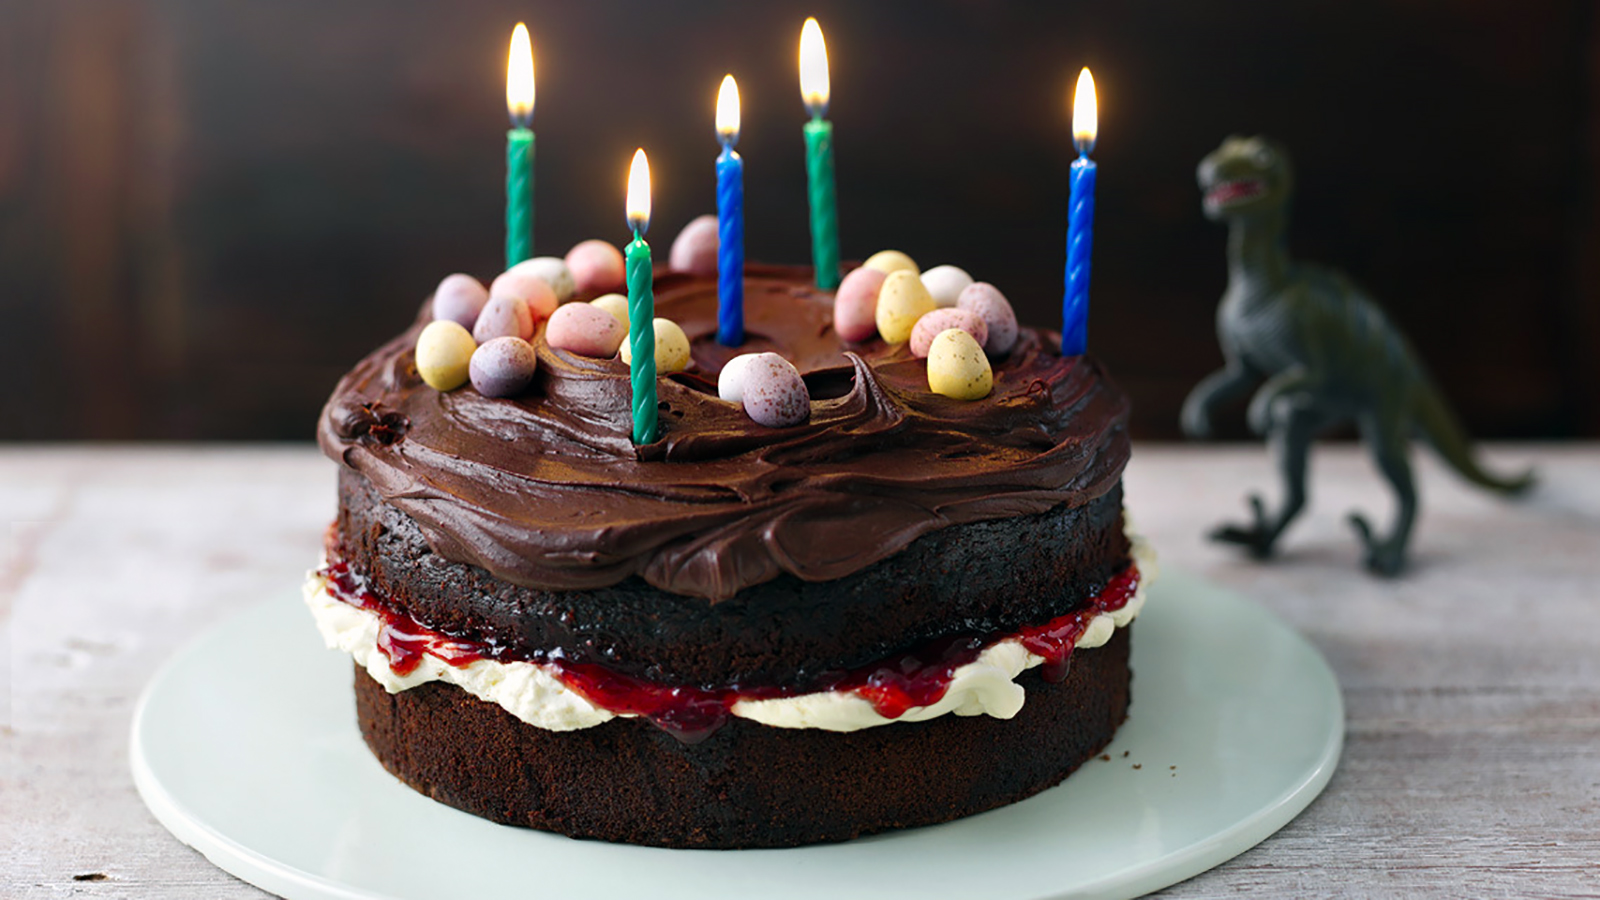 Easy chocolate birthday cake recipe BBC Food